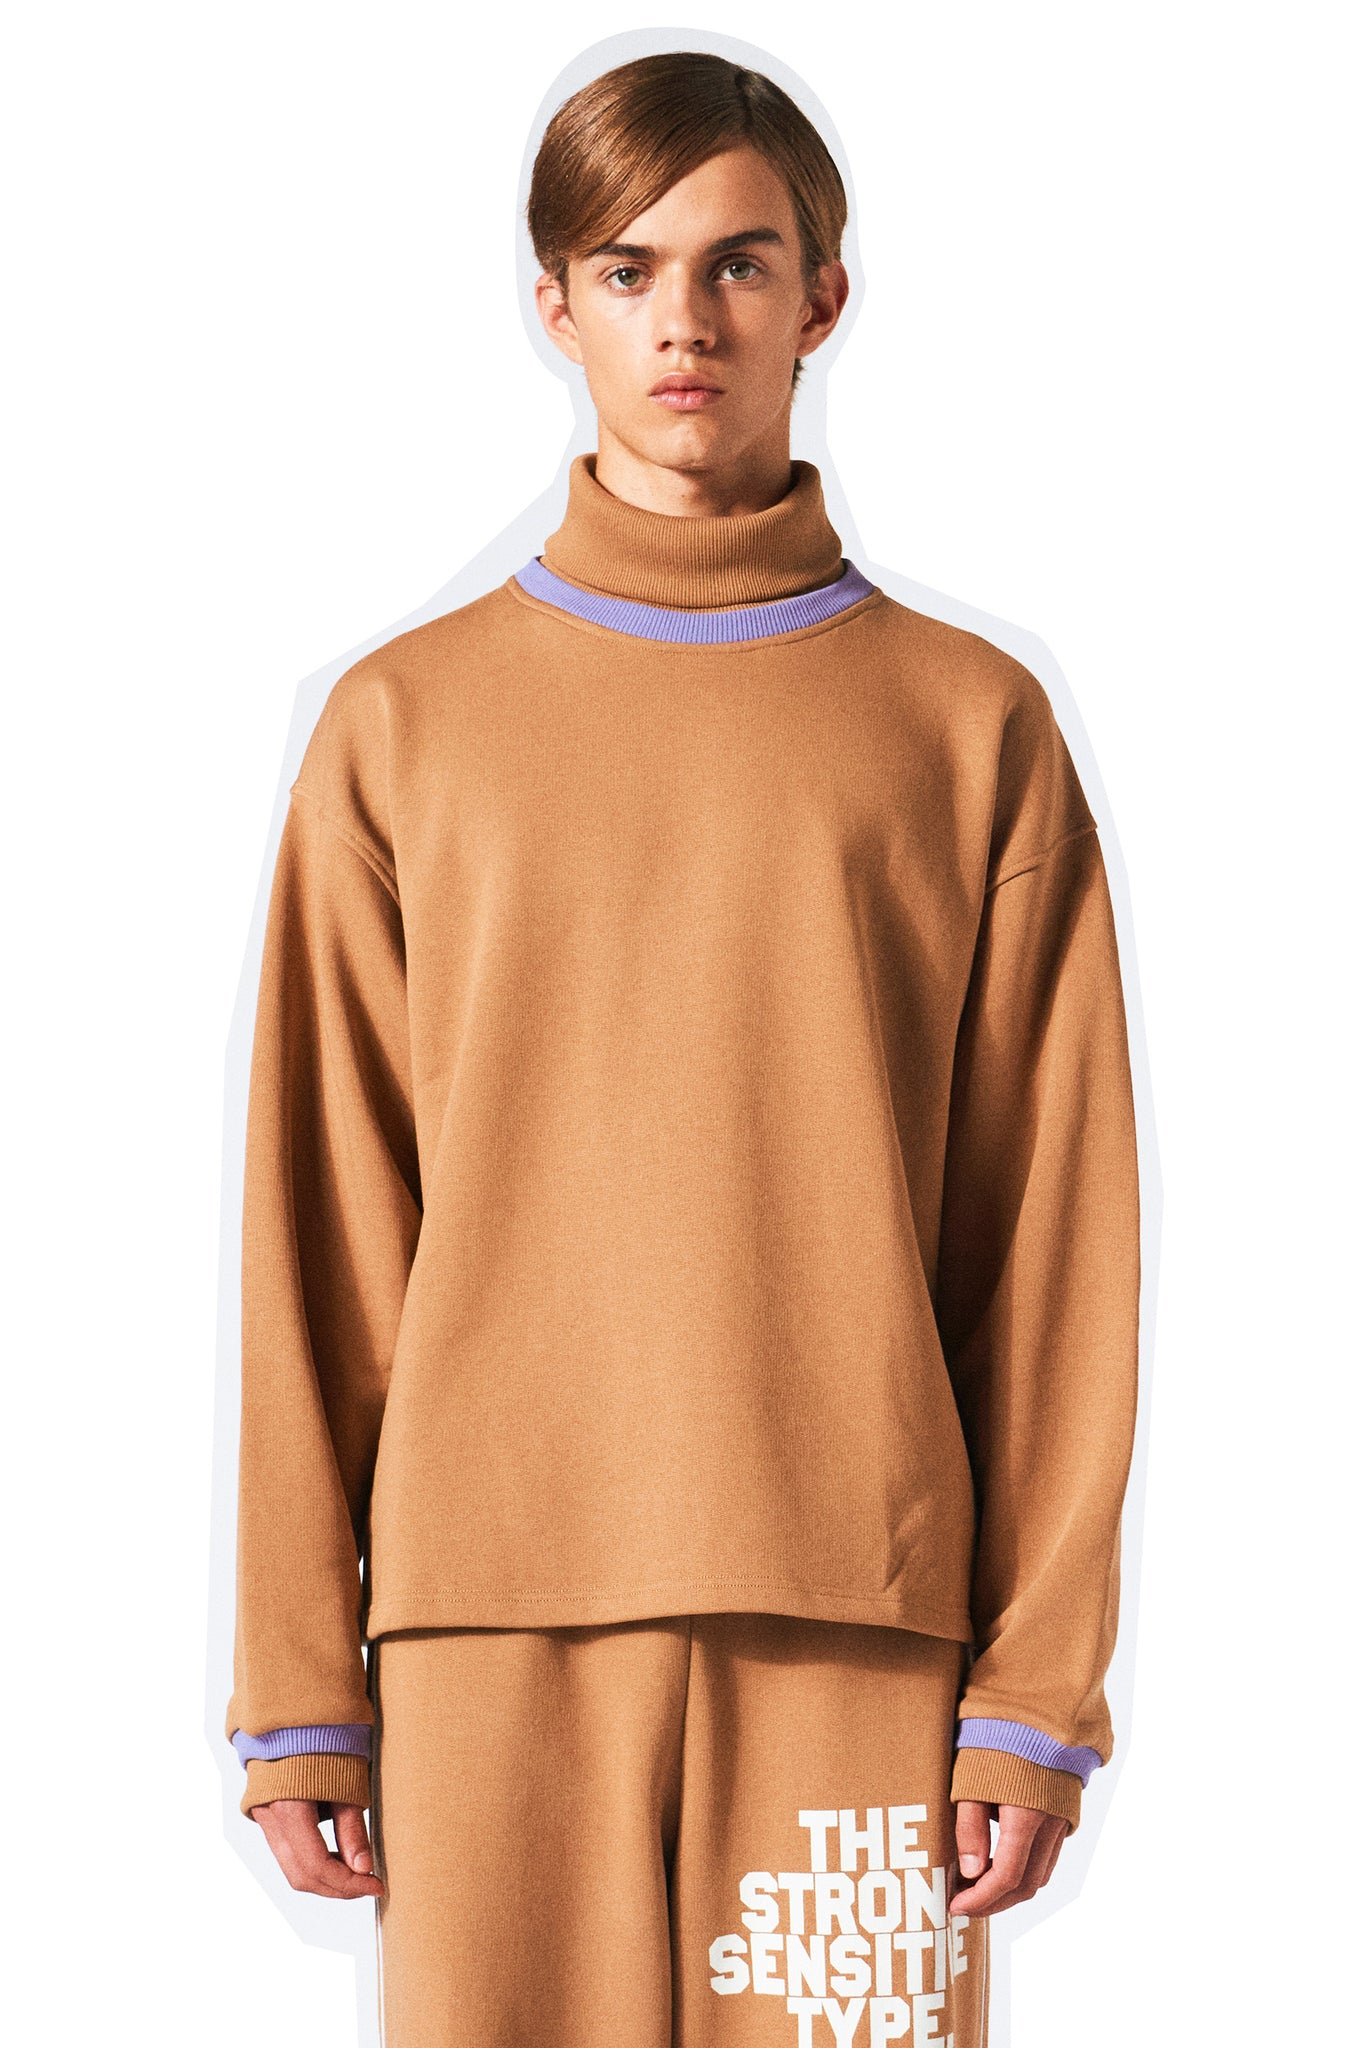 Martin Asbjørn Asbjorn brown sweatshirt with turtleneck